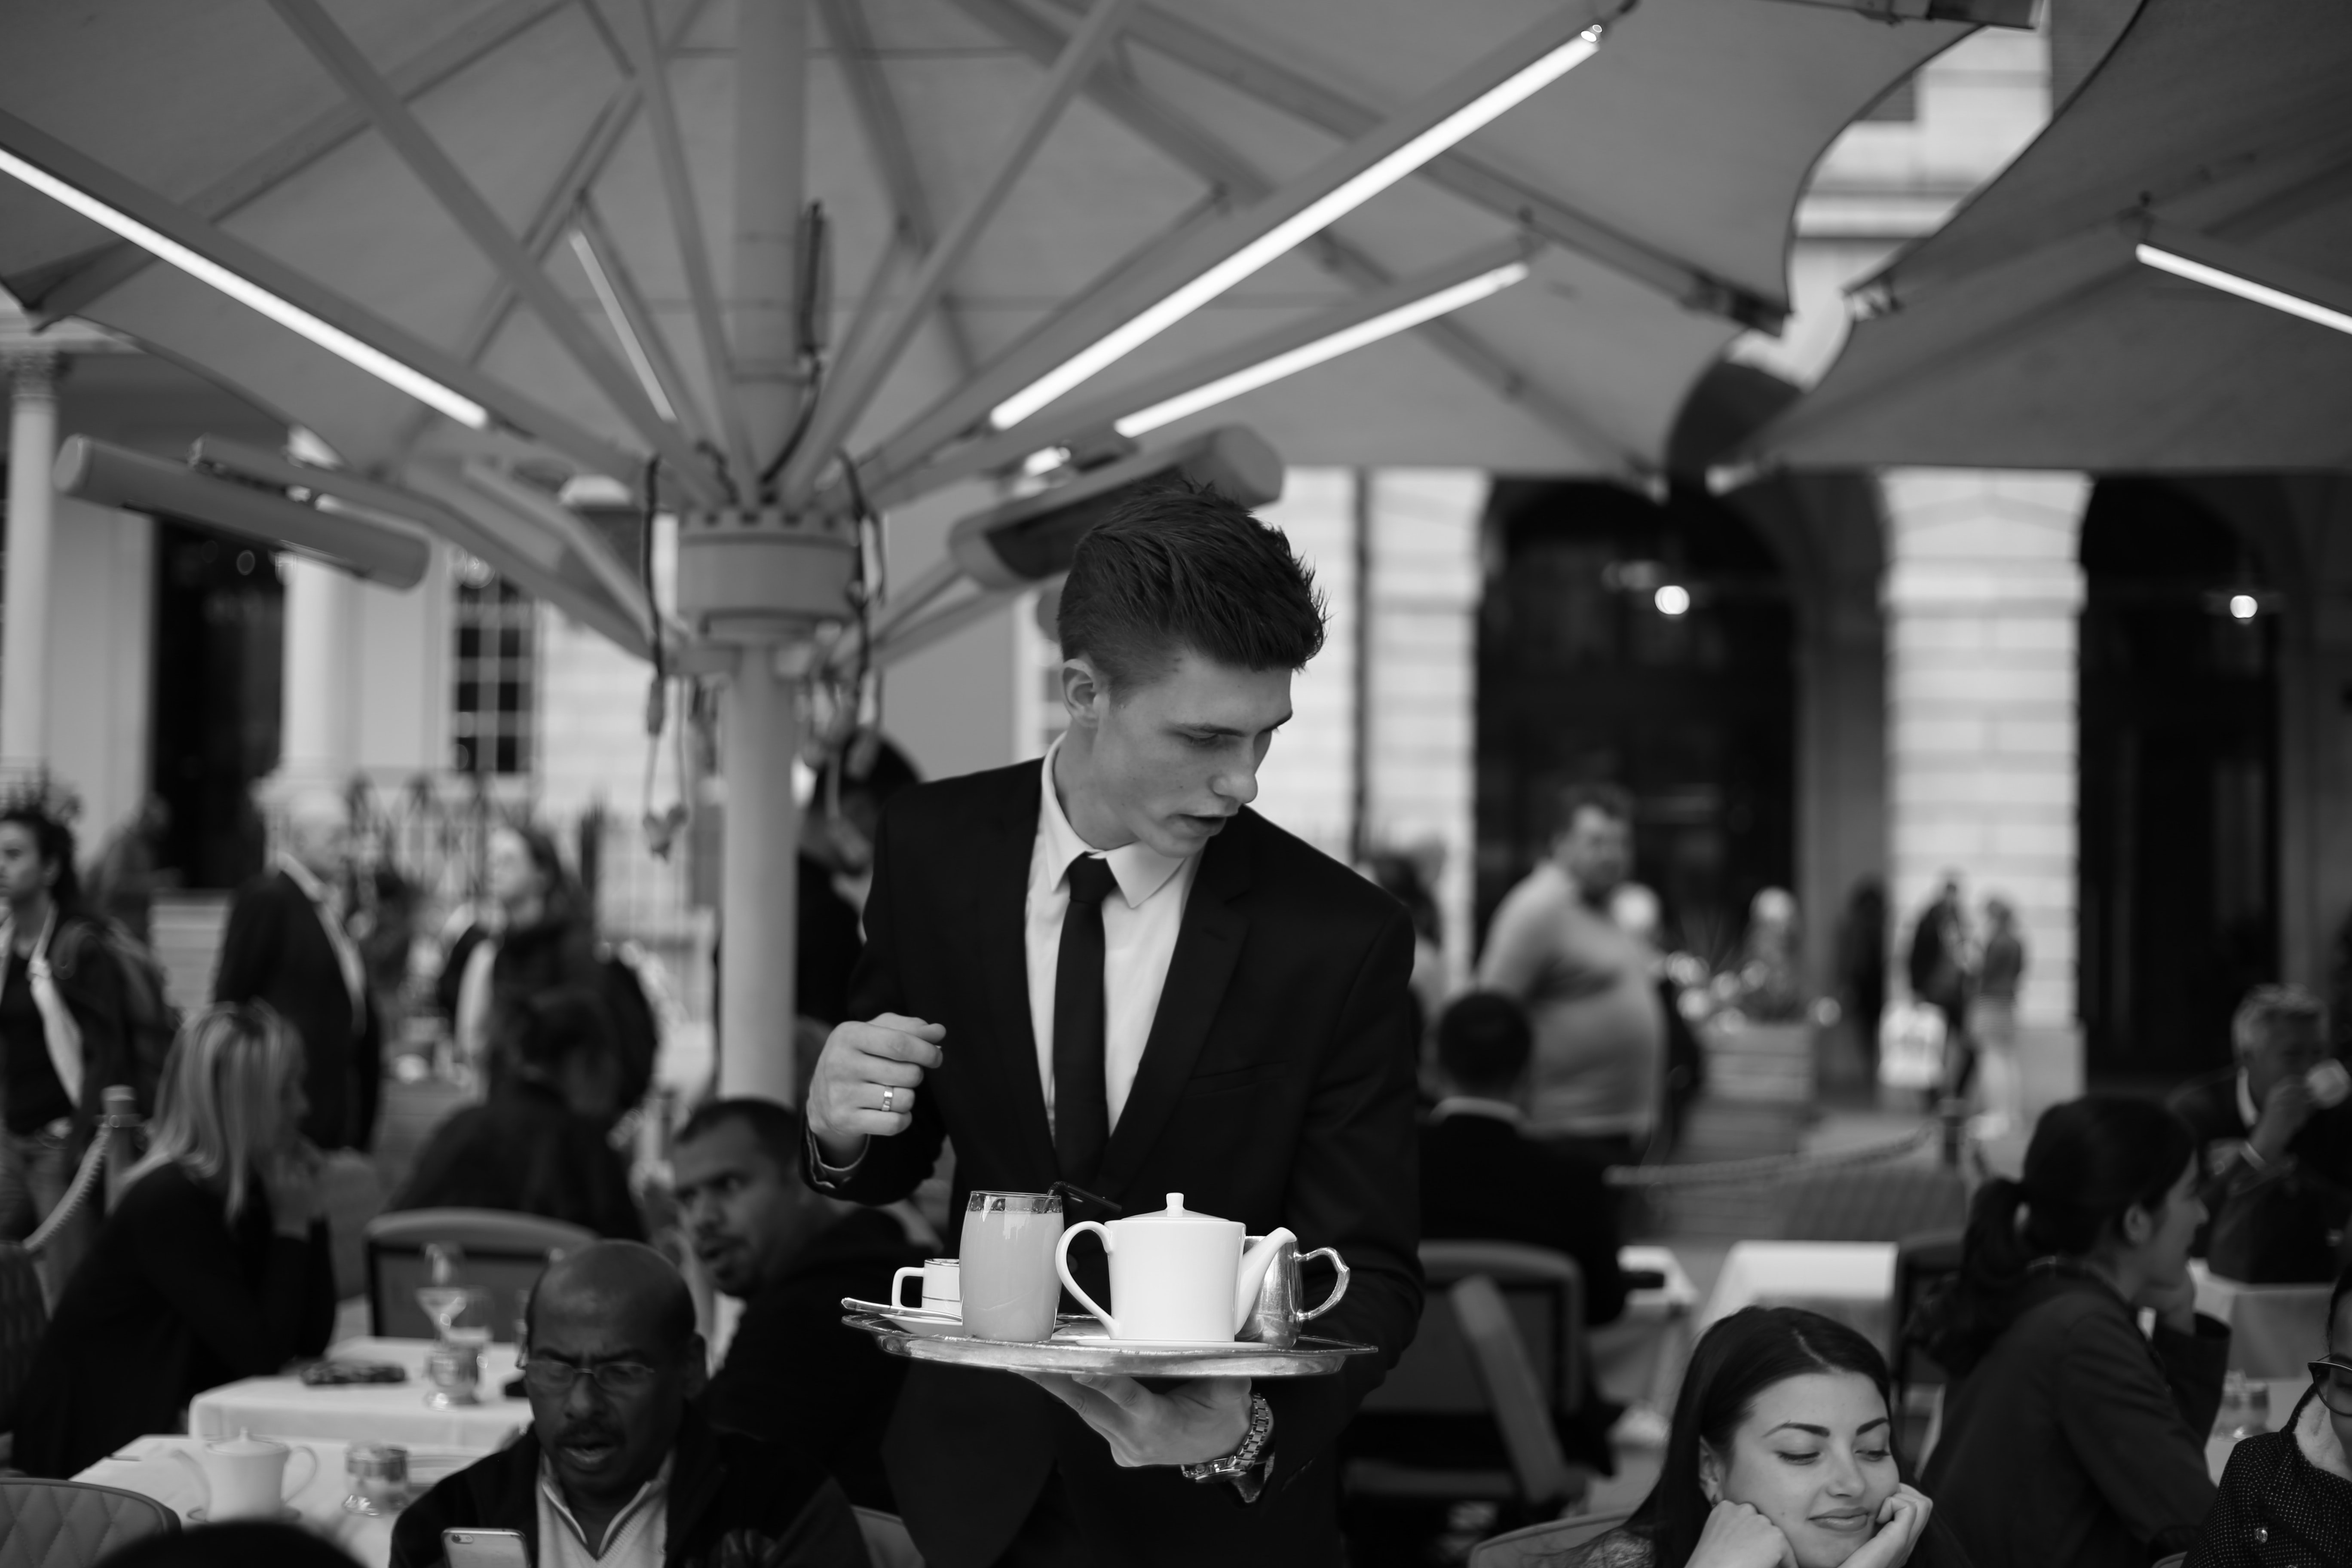 The waiter took David's order quickly and then moved to the other tables   Photo: Pexels